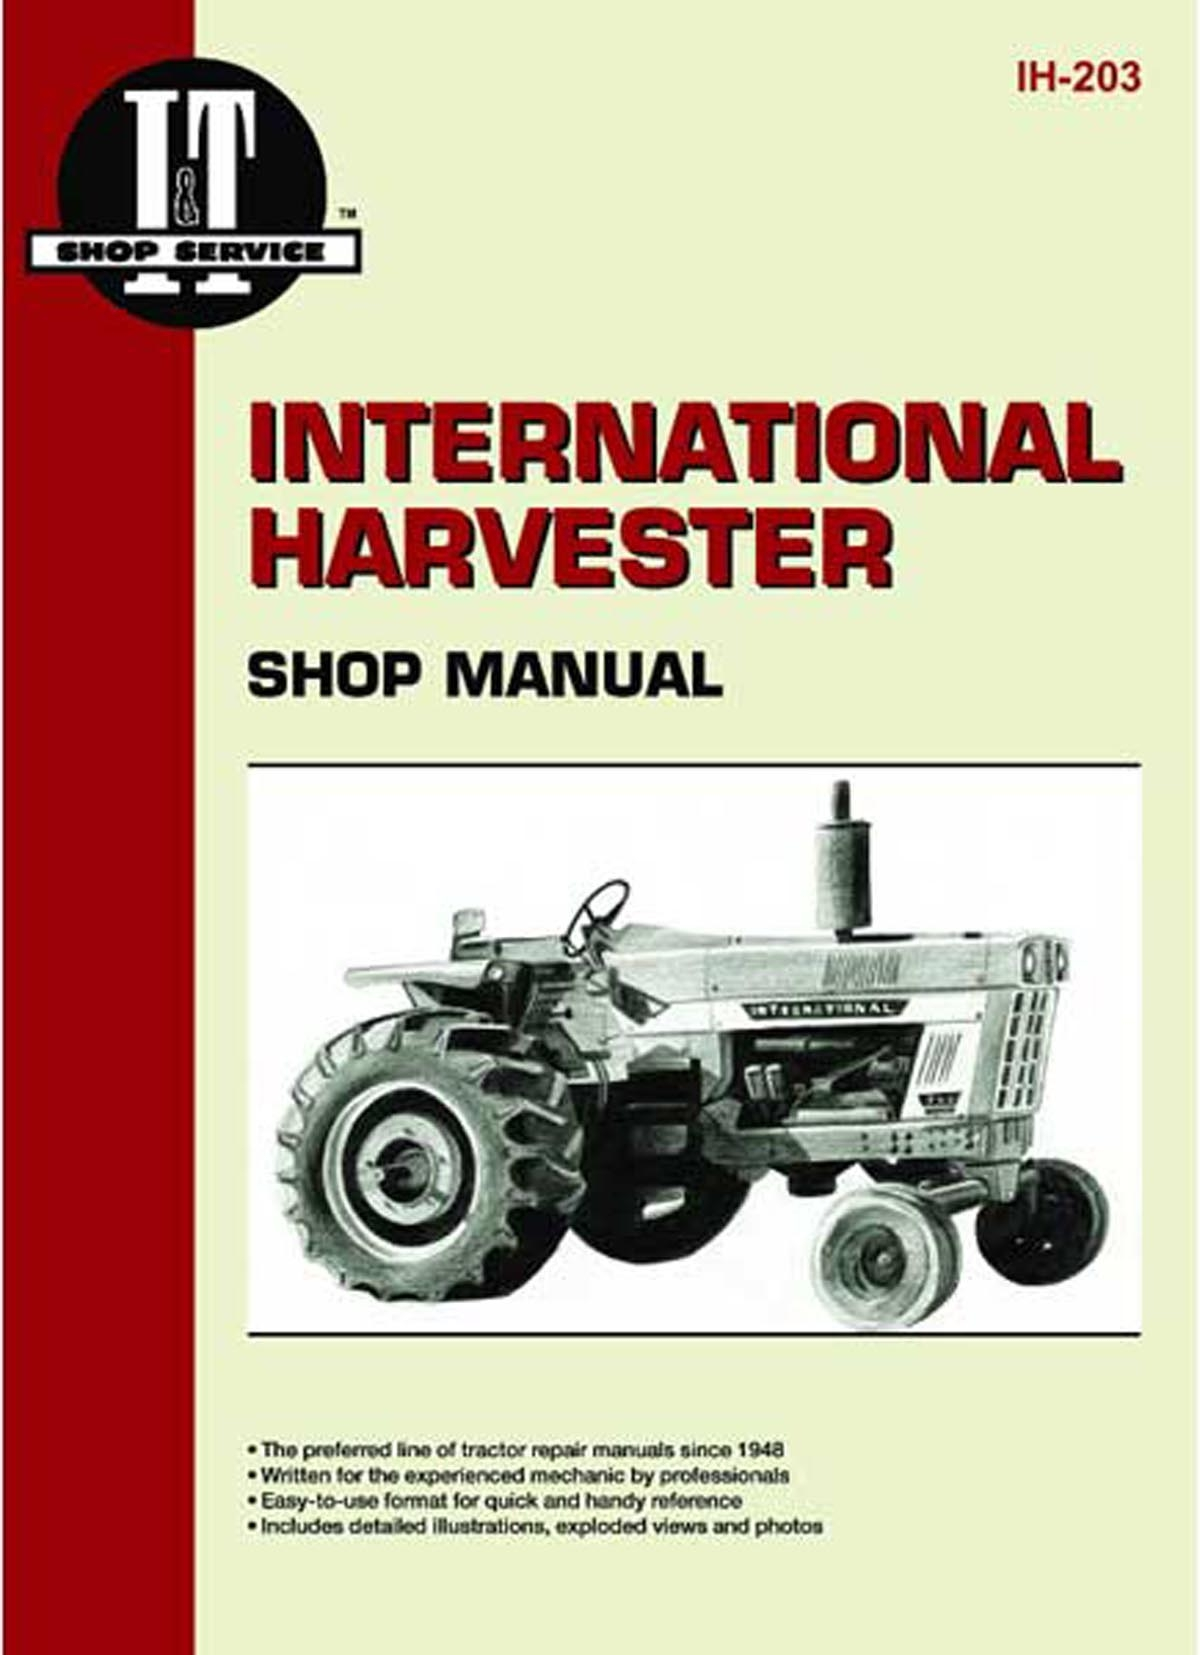 I T Shop Service Manual Case Ih Parts Tractor. I T Shop Service Manual. Wiring. 3294 Case Ih Wiring Schematic At Scoala.co